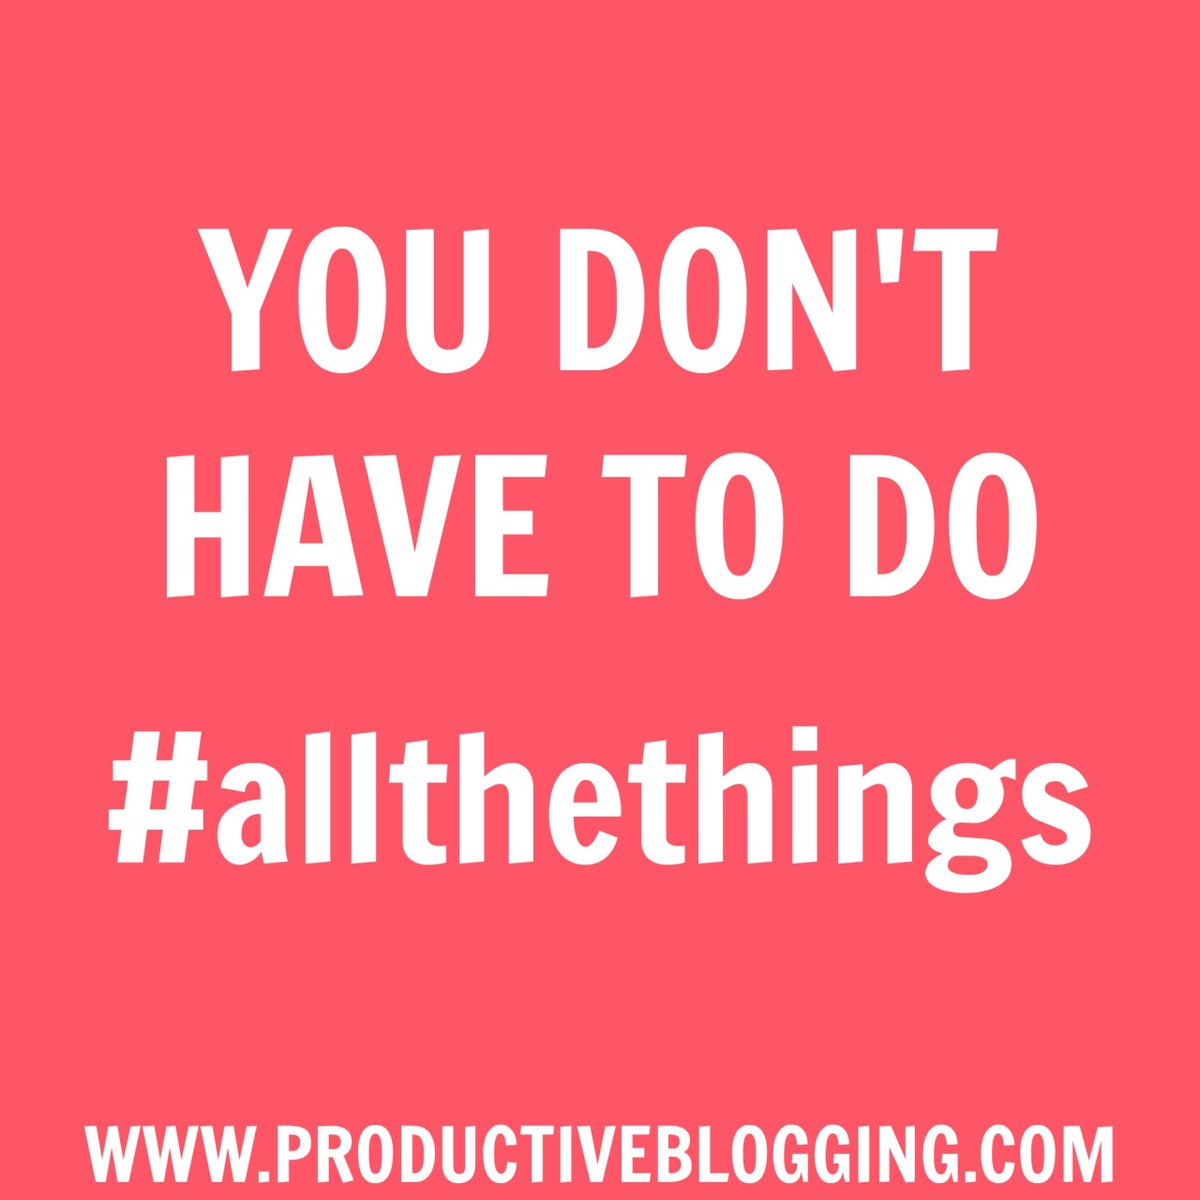 The simple fact is there is not enough time to do #allthethings. We have to get smart and focus on the things that will make the biggest difference, the things that will get us closer to our #blogginggoals  #timemanagement #productivity #productivitytips #productivityhacks https://t.co/Kn9KALCK43